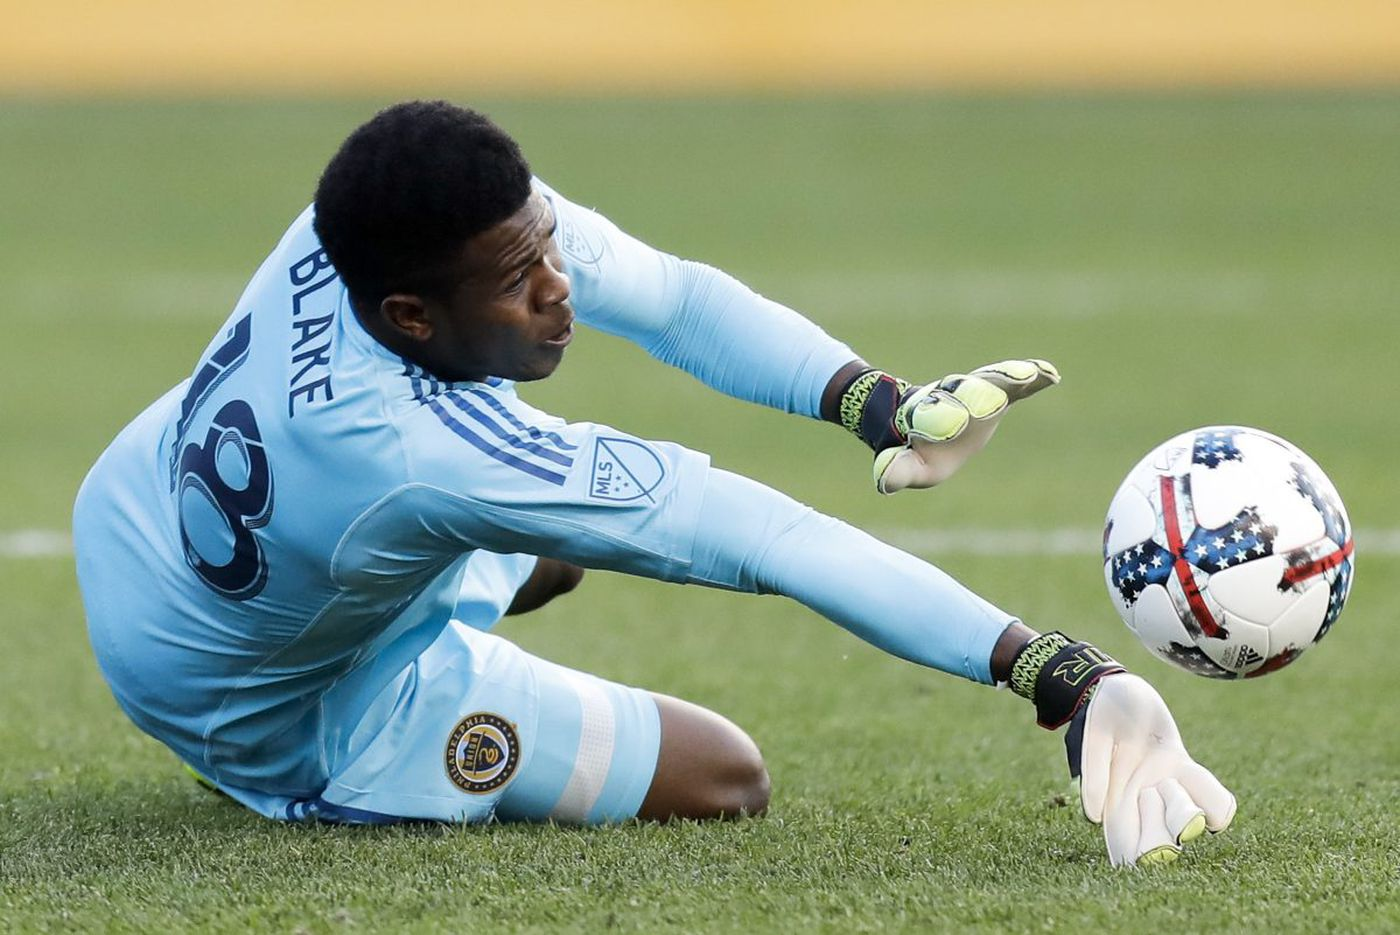 Union re-sign star goalkeeper Andre Blake to multiyear contract